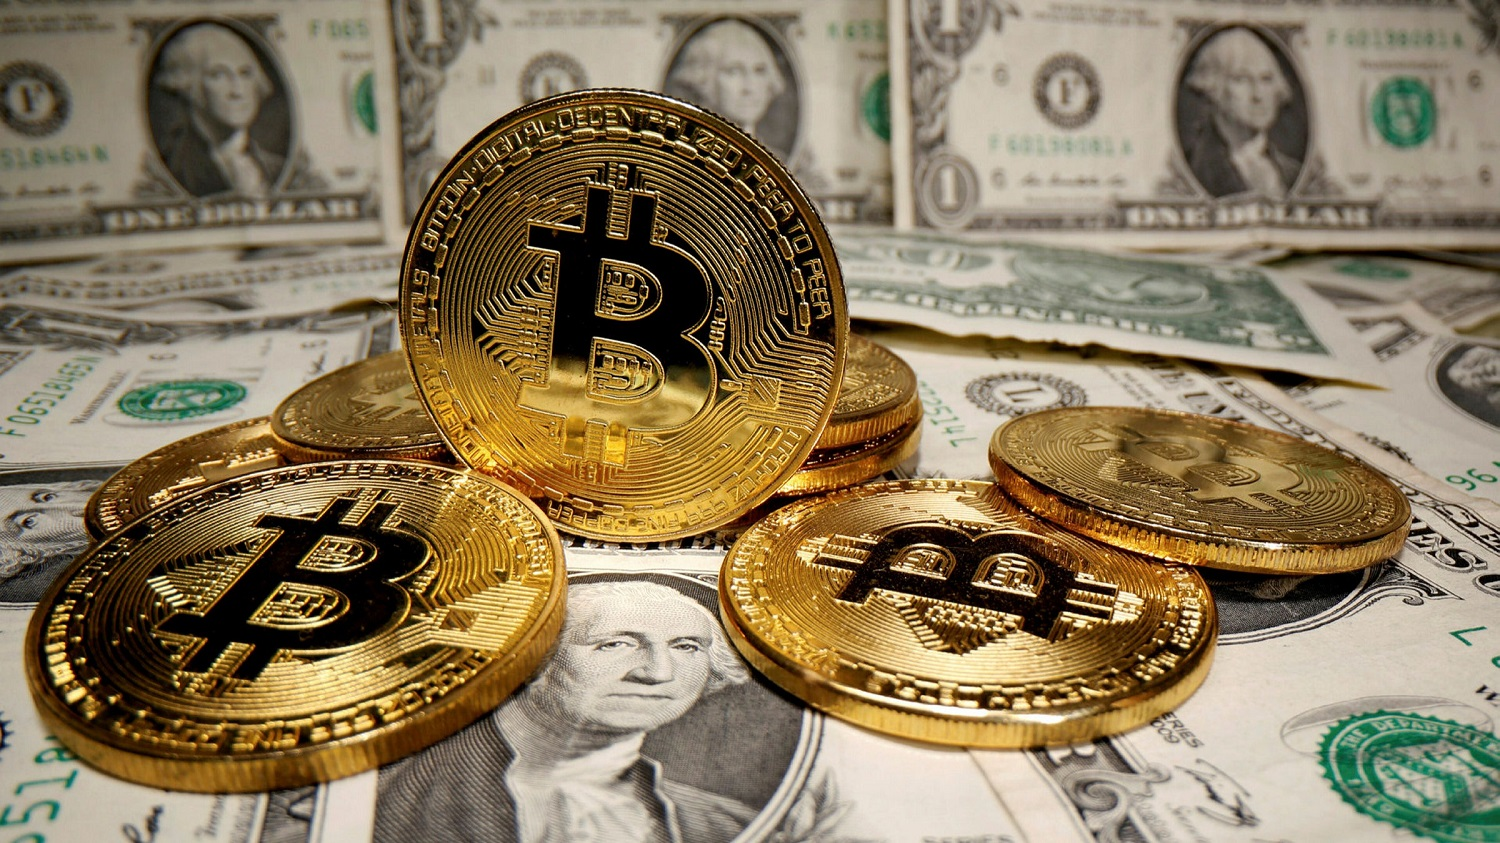 1617679692 480 The first days of bitcoin from someone associated with Satoshi The first days of bitcoin from someone associated with Satoshi Nakamoto 5